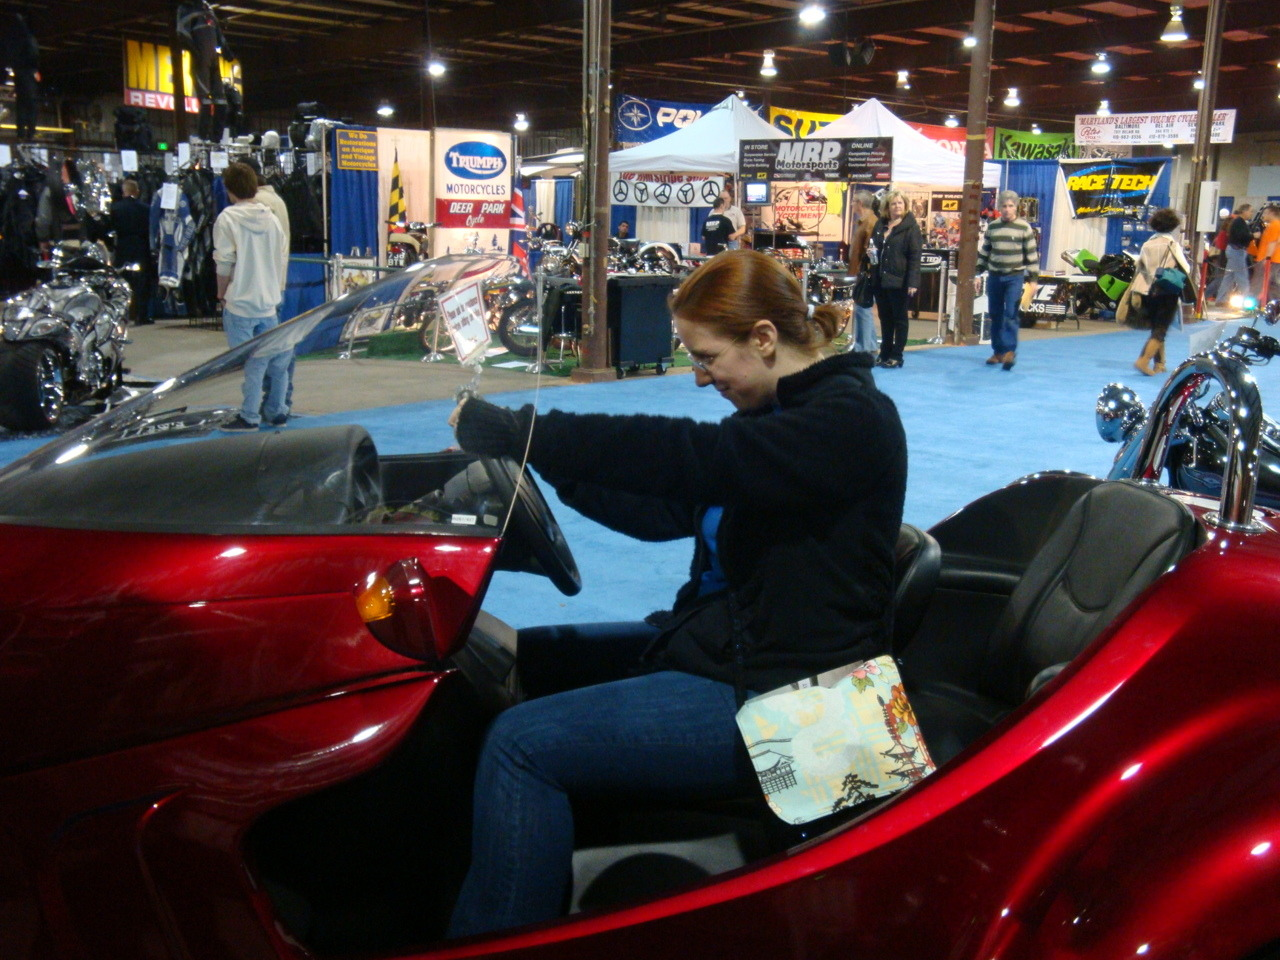 More bike show stuff. Sitting in a Stallion Motor Trike. (You can tell this was an old one of me, I'd only lost about 50 pounds when we went to this show)